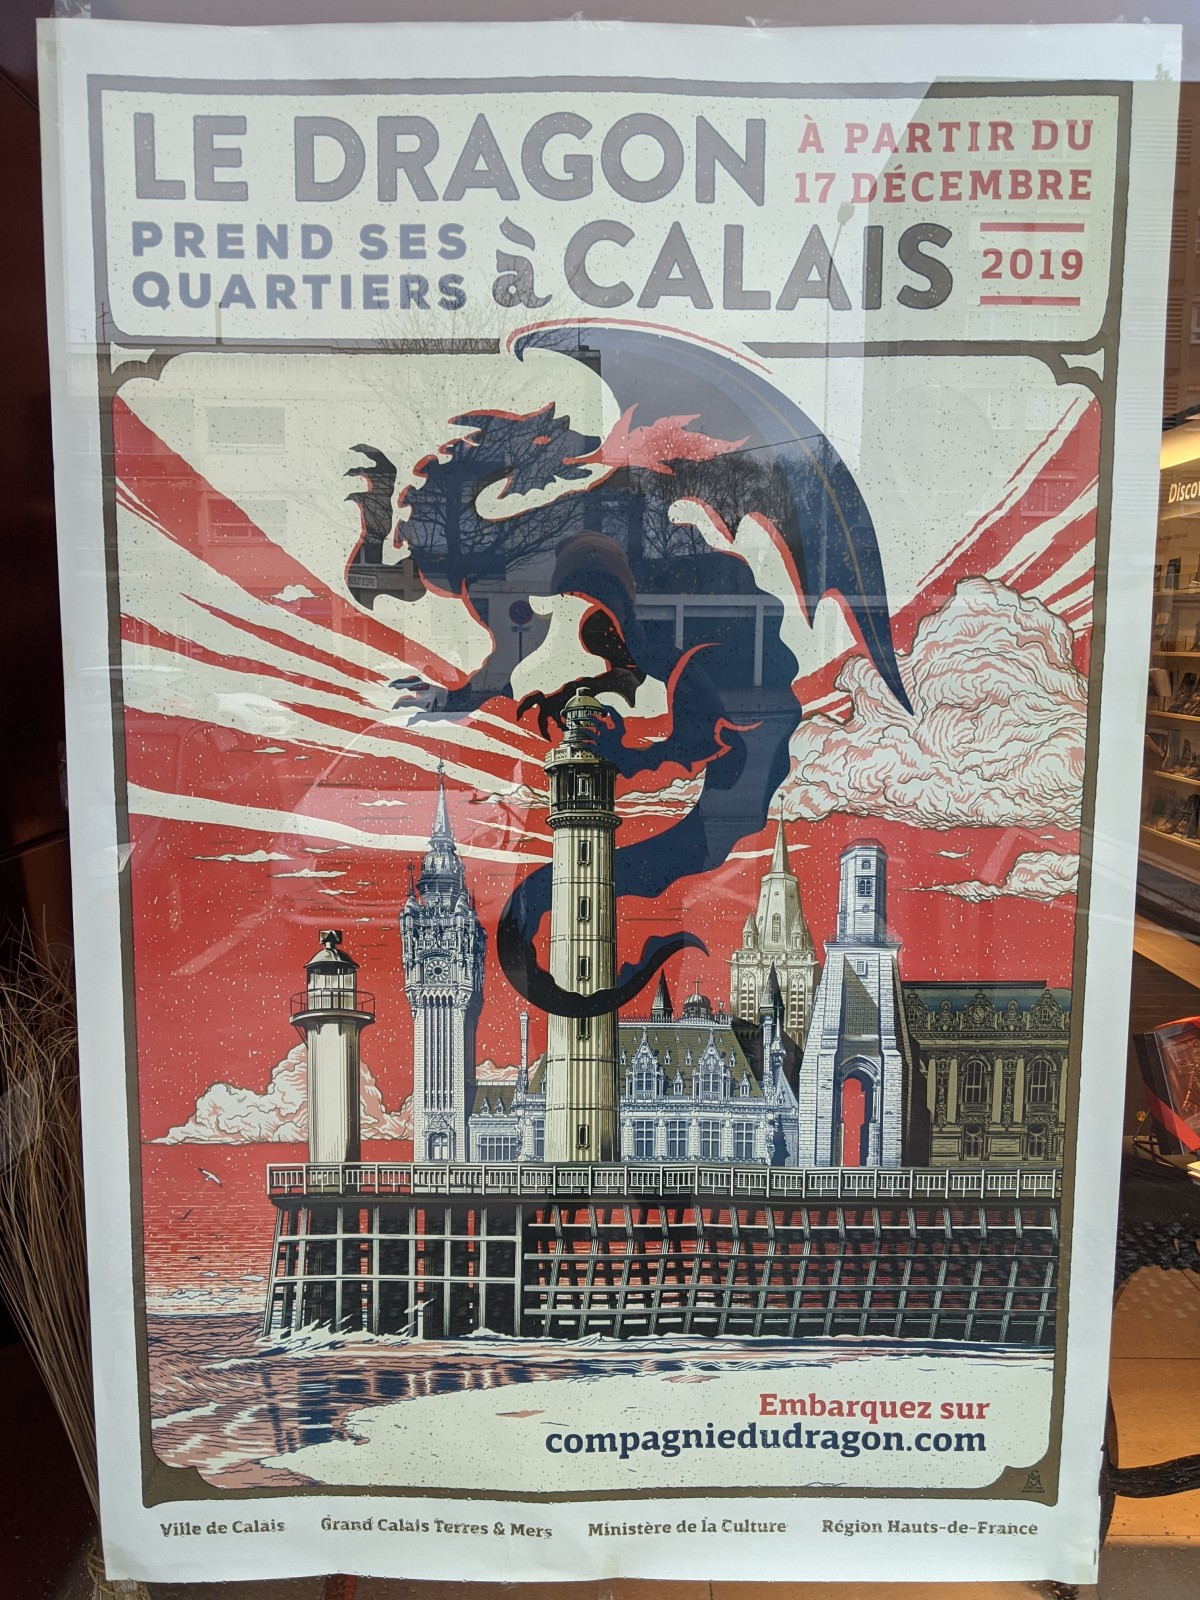 Dunkerque and Calais,France